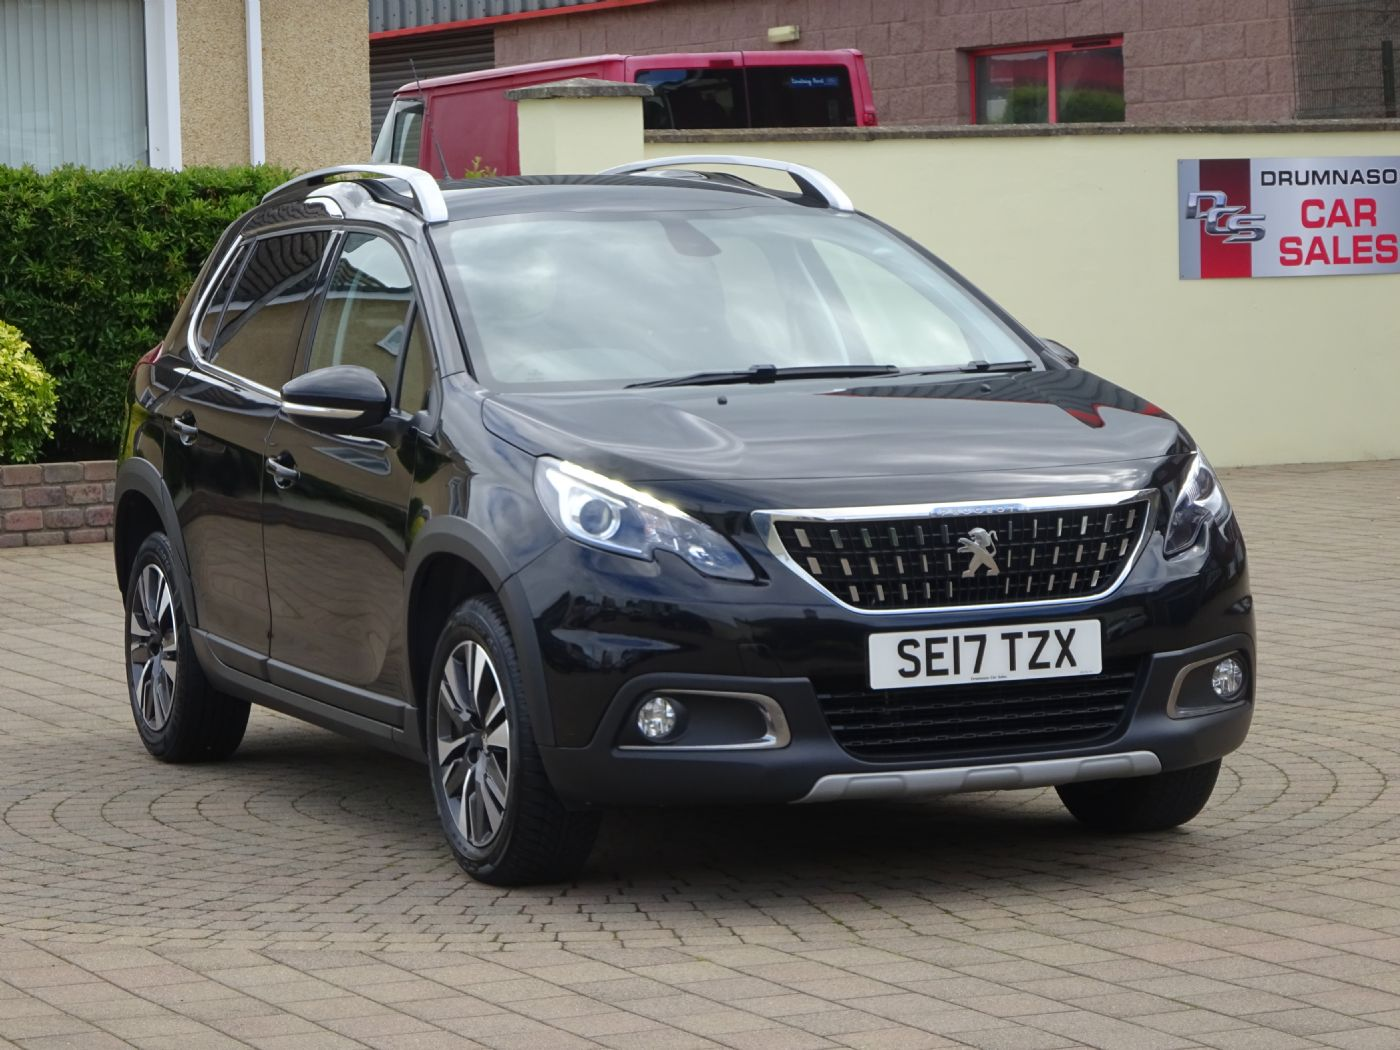 Peugeot 2008 1.2 Puretech Allure, Half leather trim